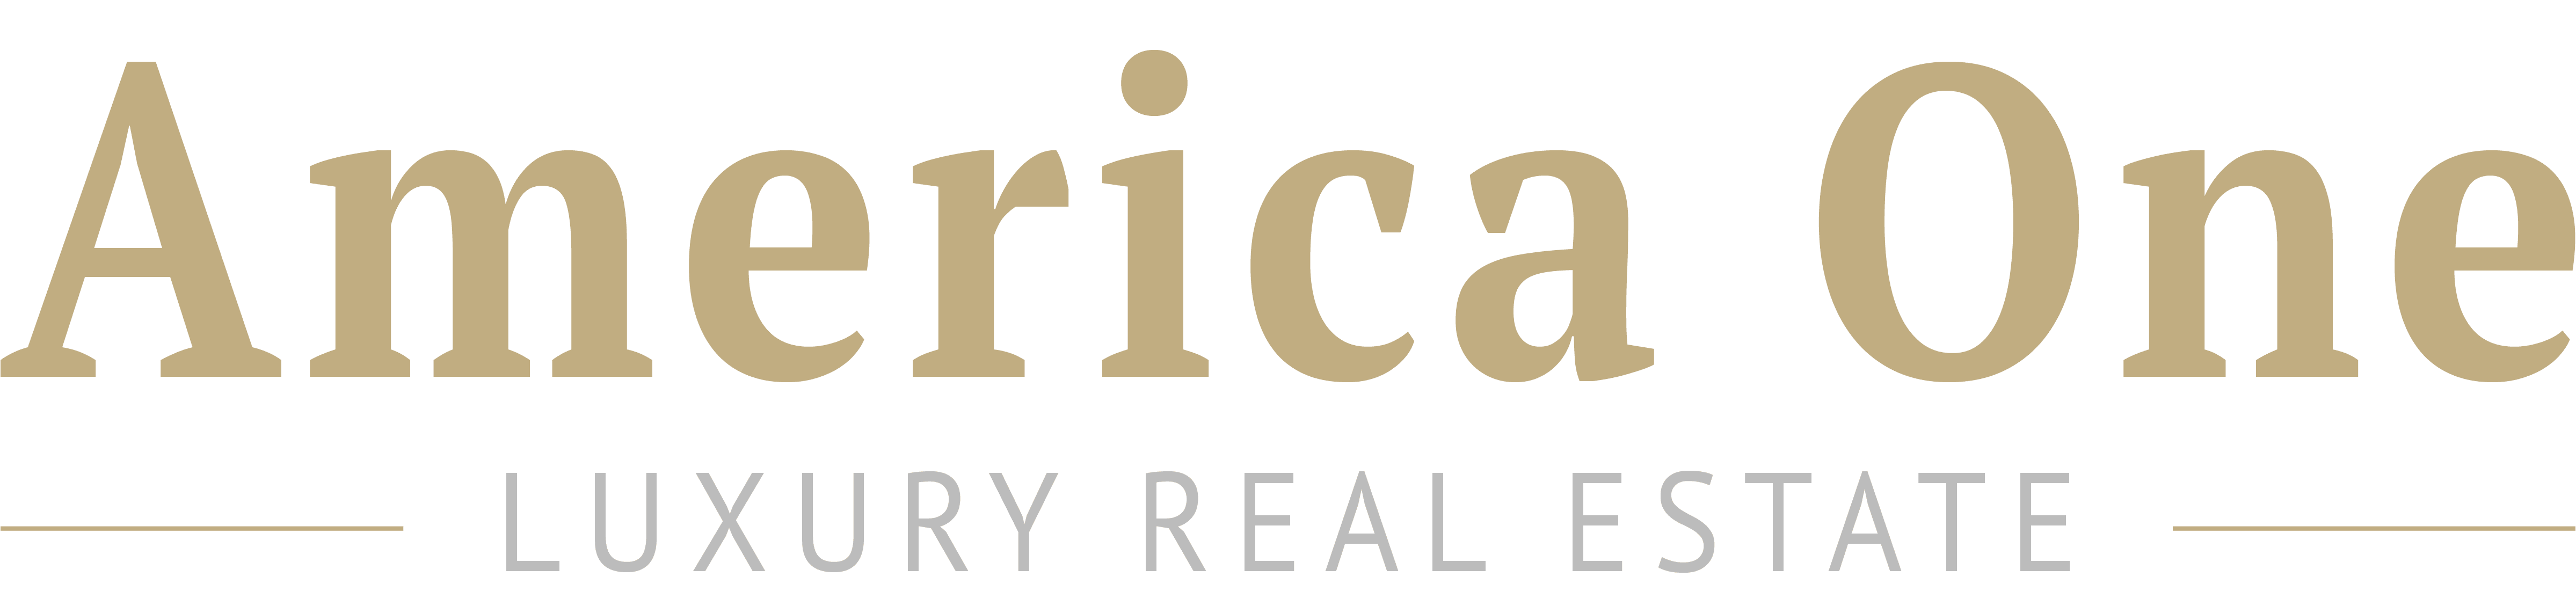 Logo America One - Luxury Real Estate